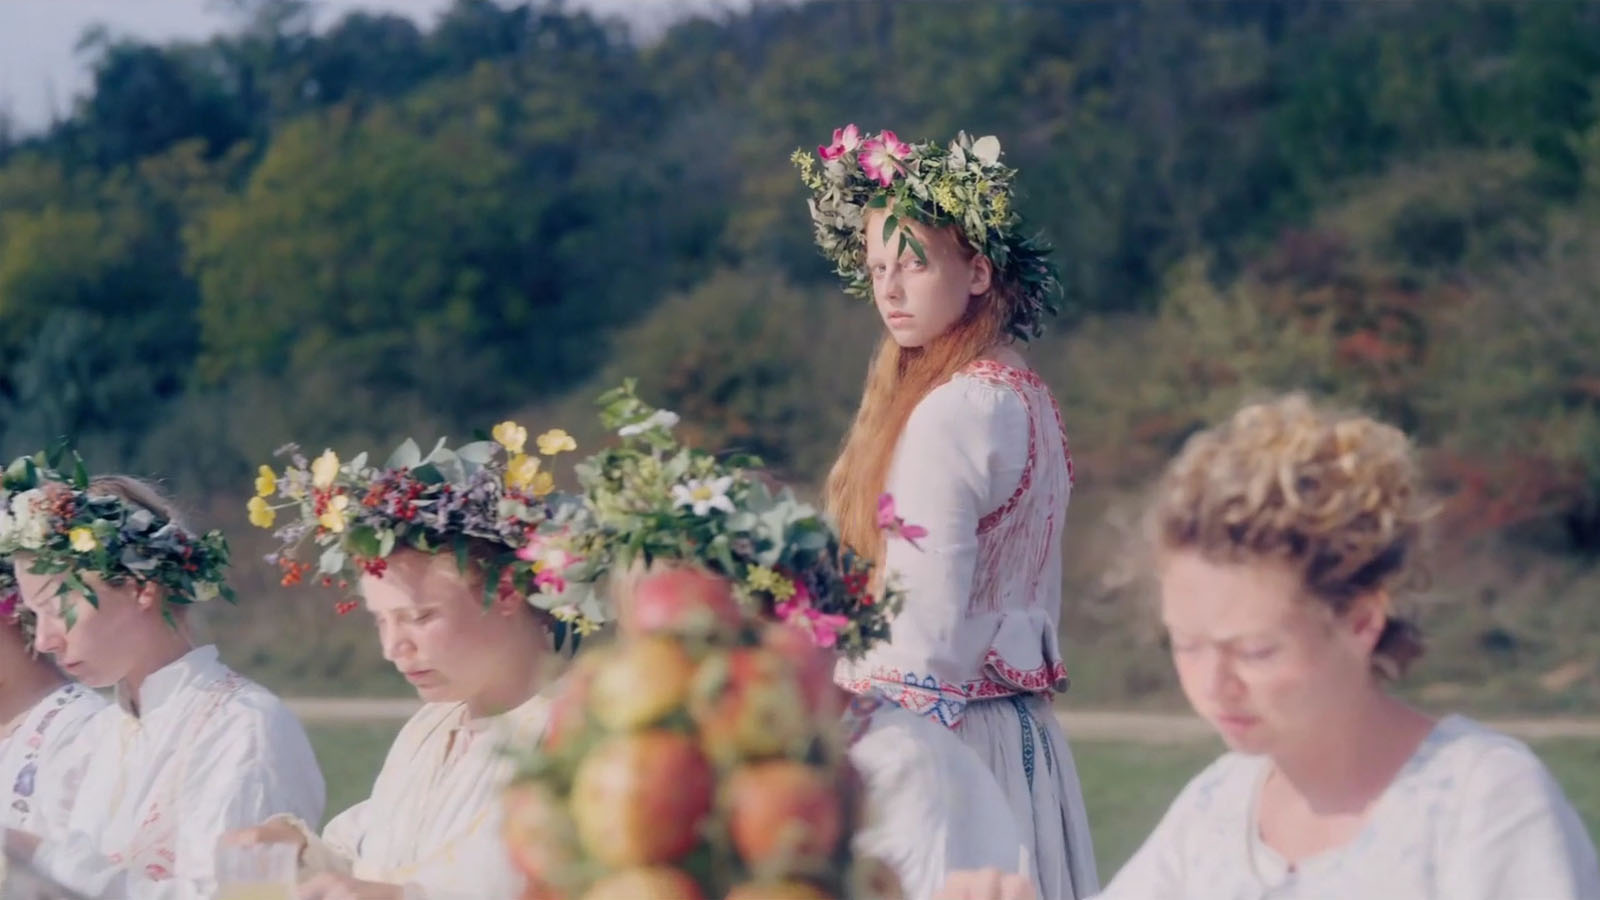 Ari Aster Returns with Midsommar | The Current | The